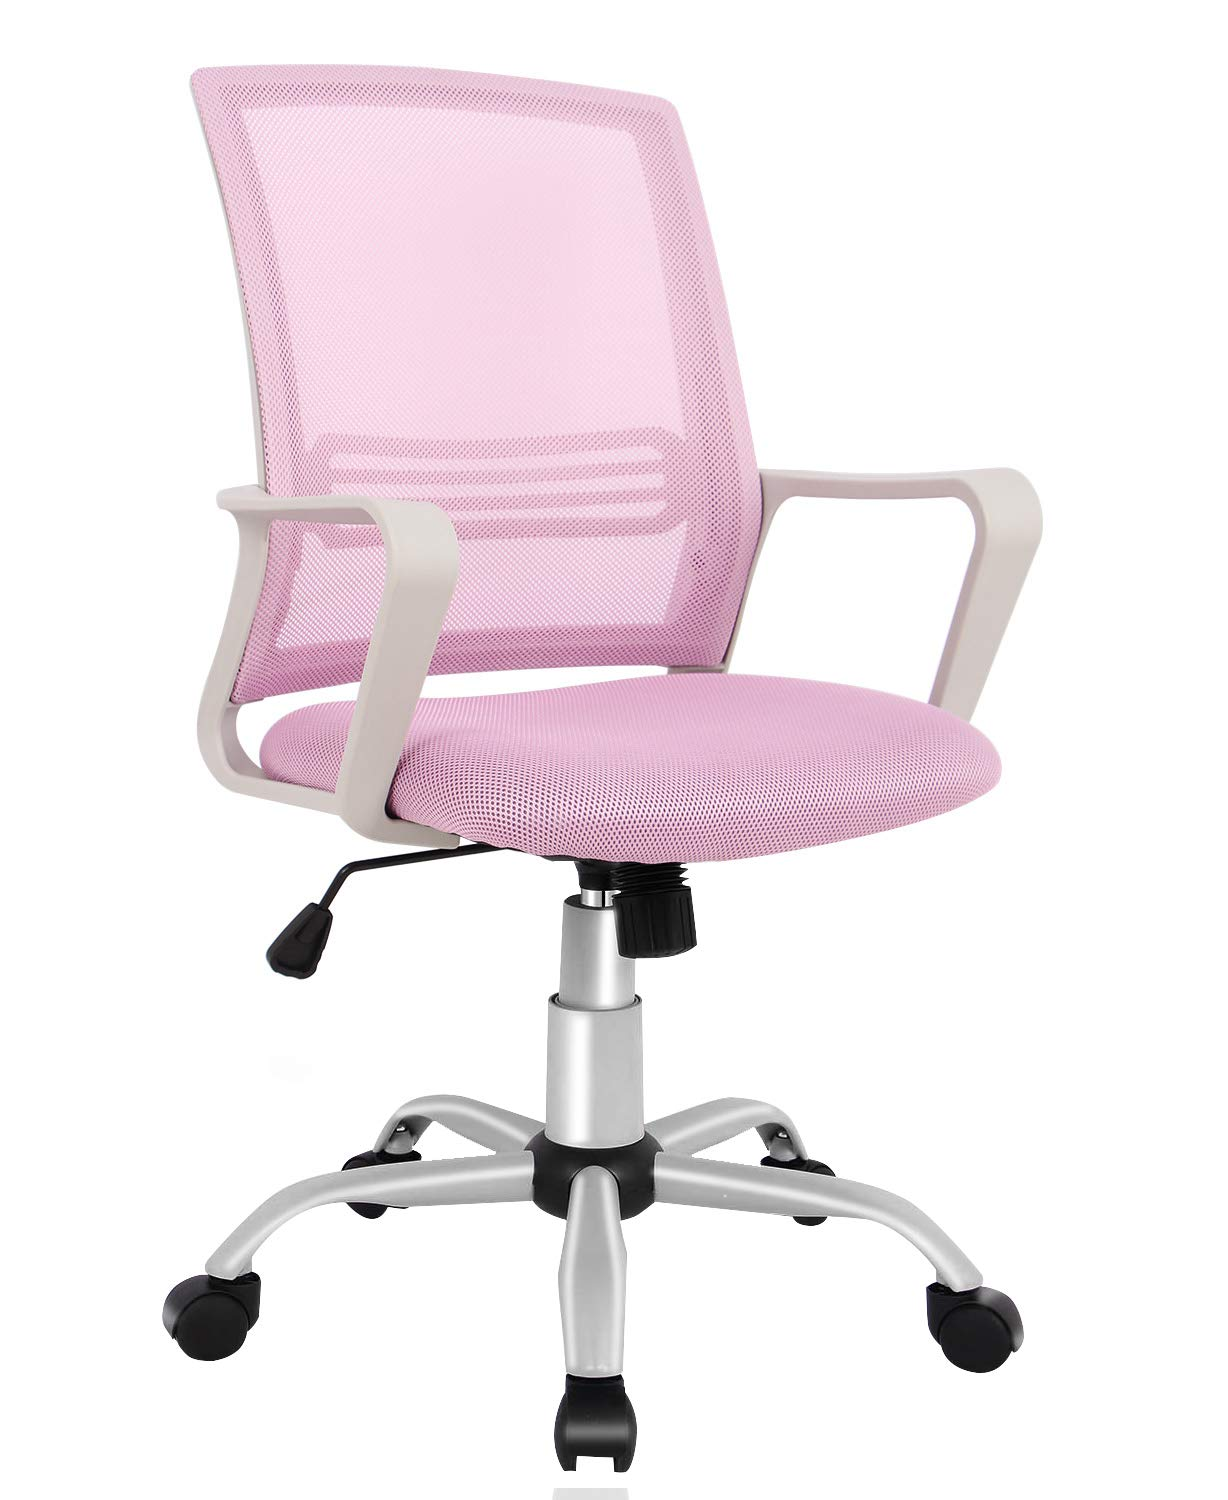 Office Chair, Mid Back Mesh Office Computer Swivel Desk Task Chair, Ergonomic Executive Chair with Armrests by SMUGDESK